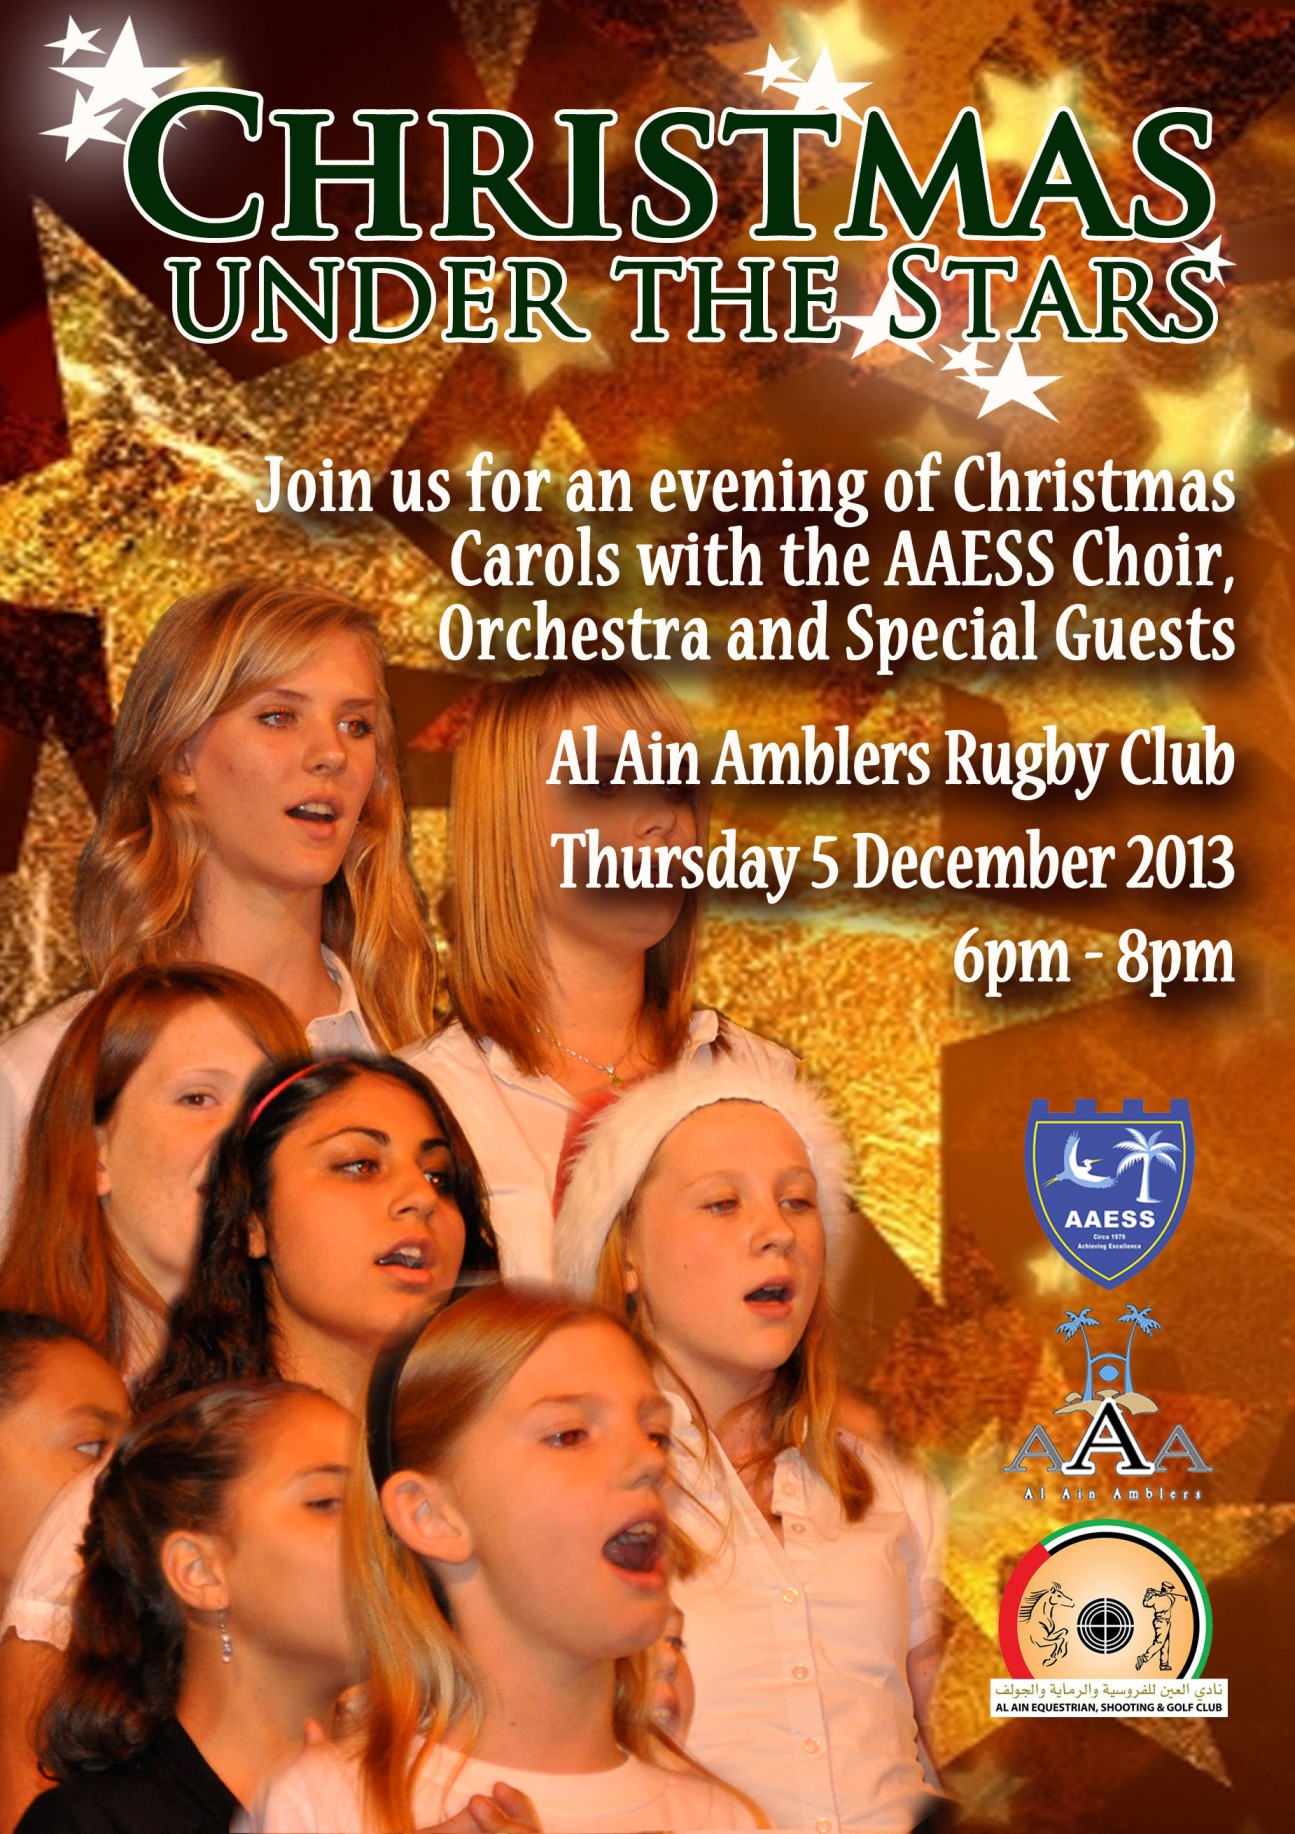 Christmas Concert at the Rugby Club - Thursday, 5th December